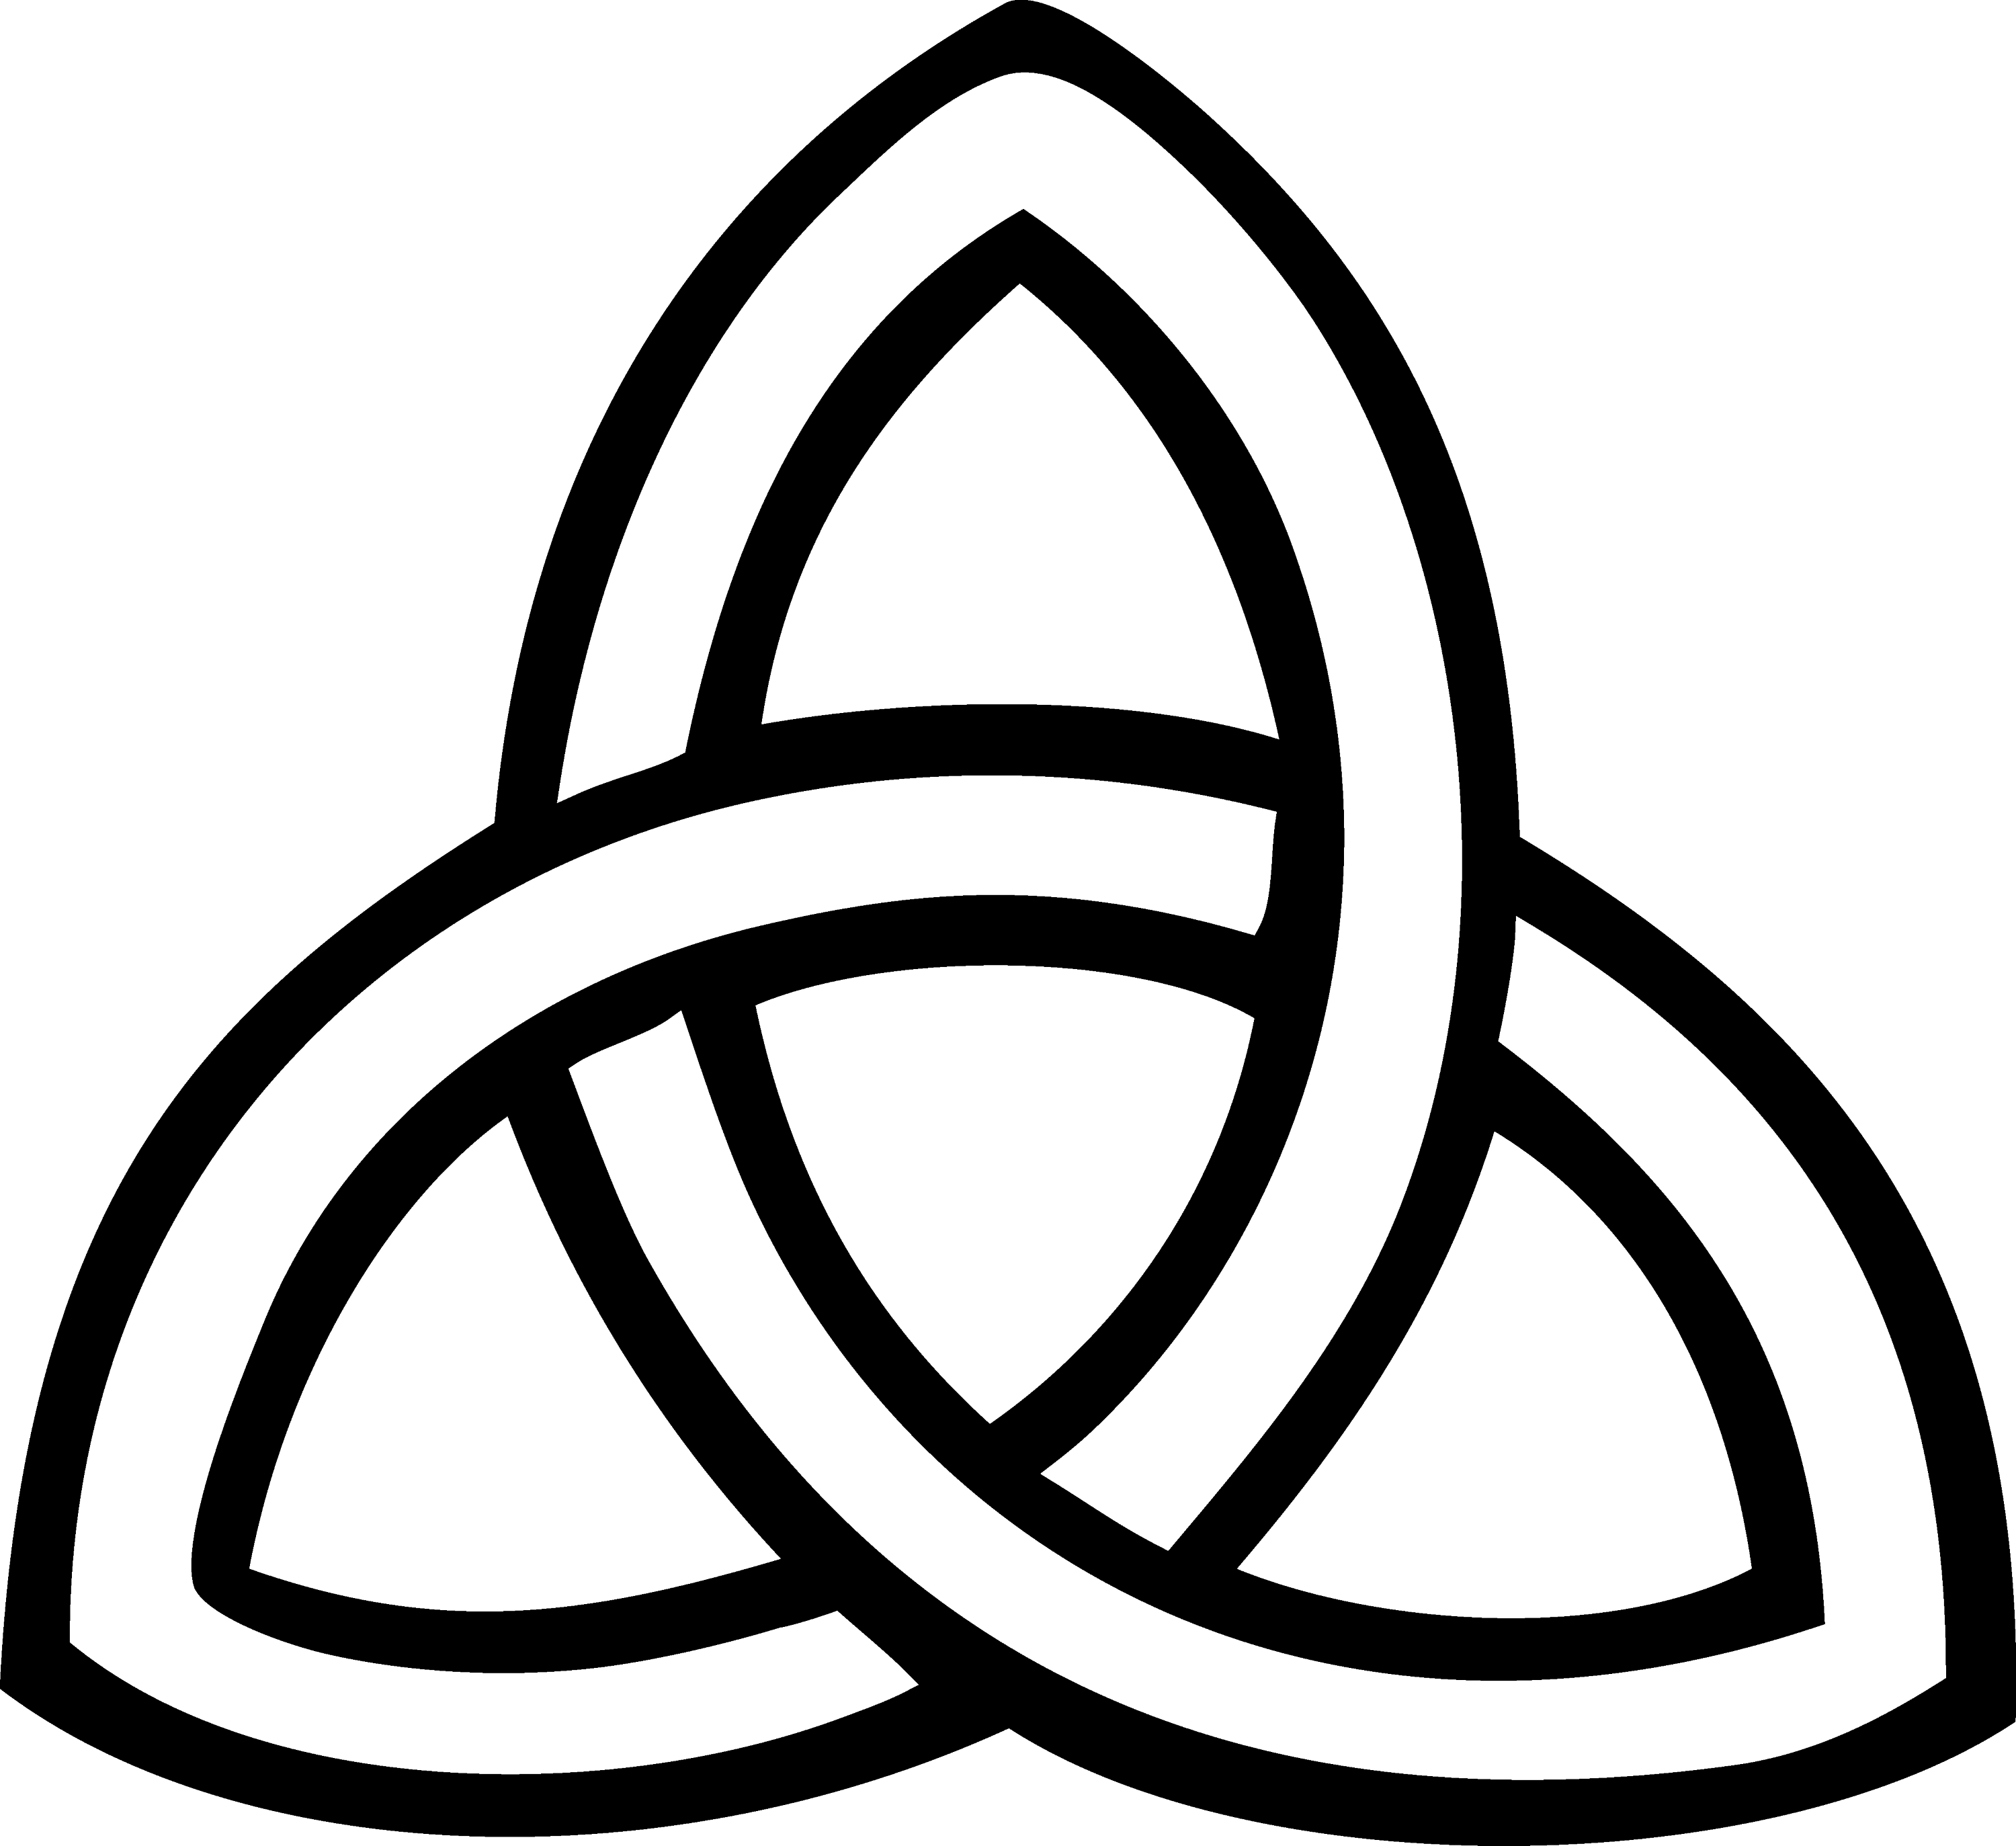 Pagan Symbols Drawings And White Triquetra Symbol